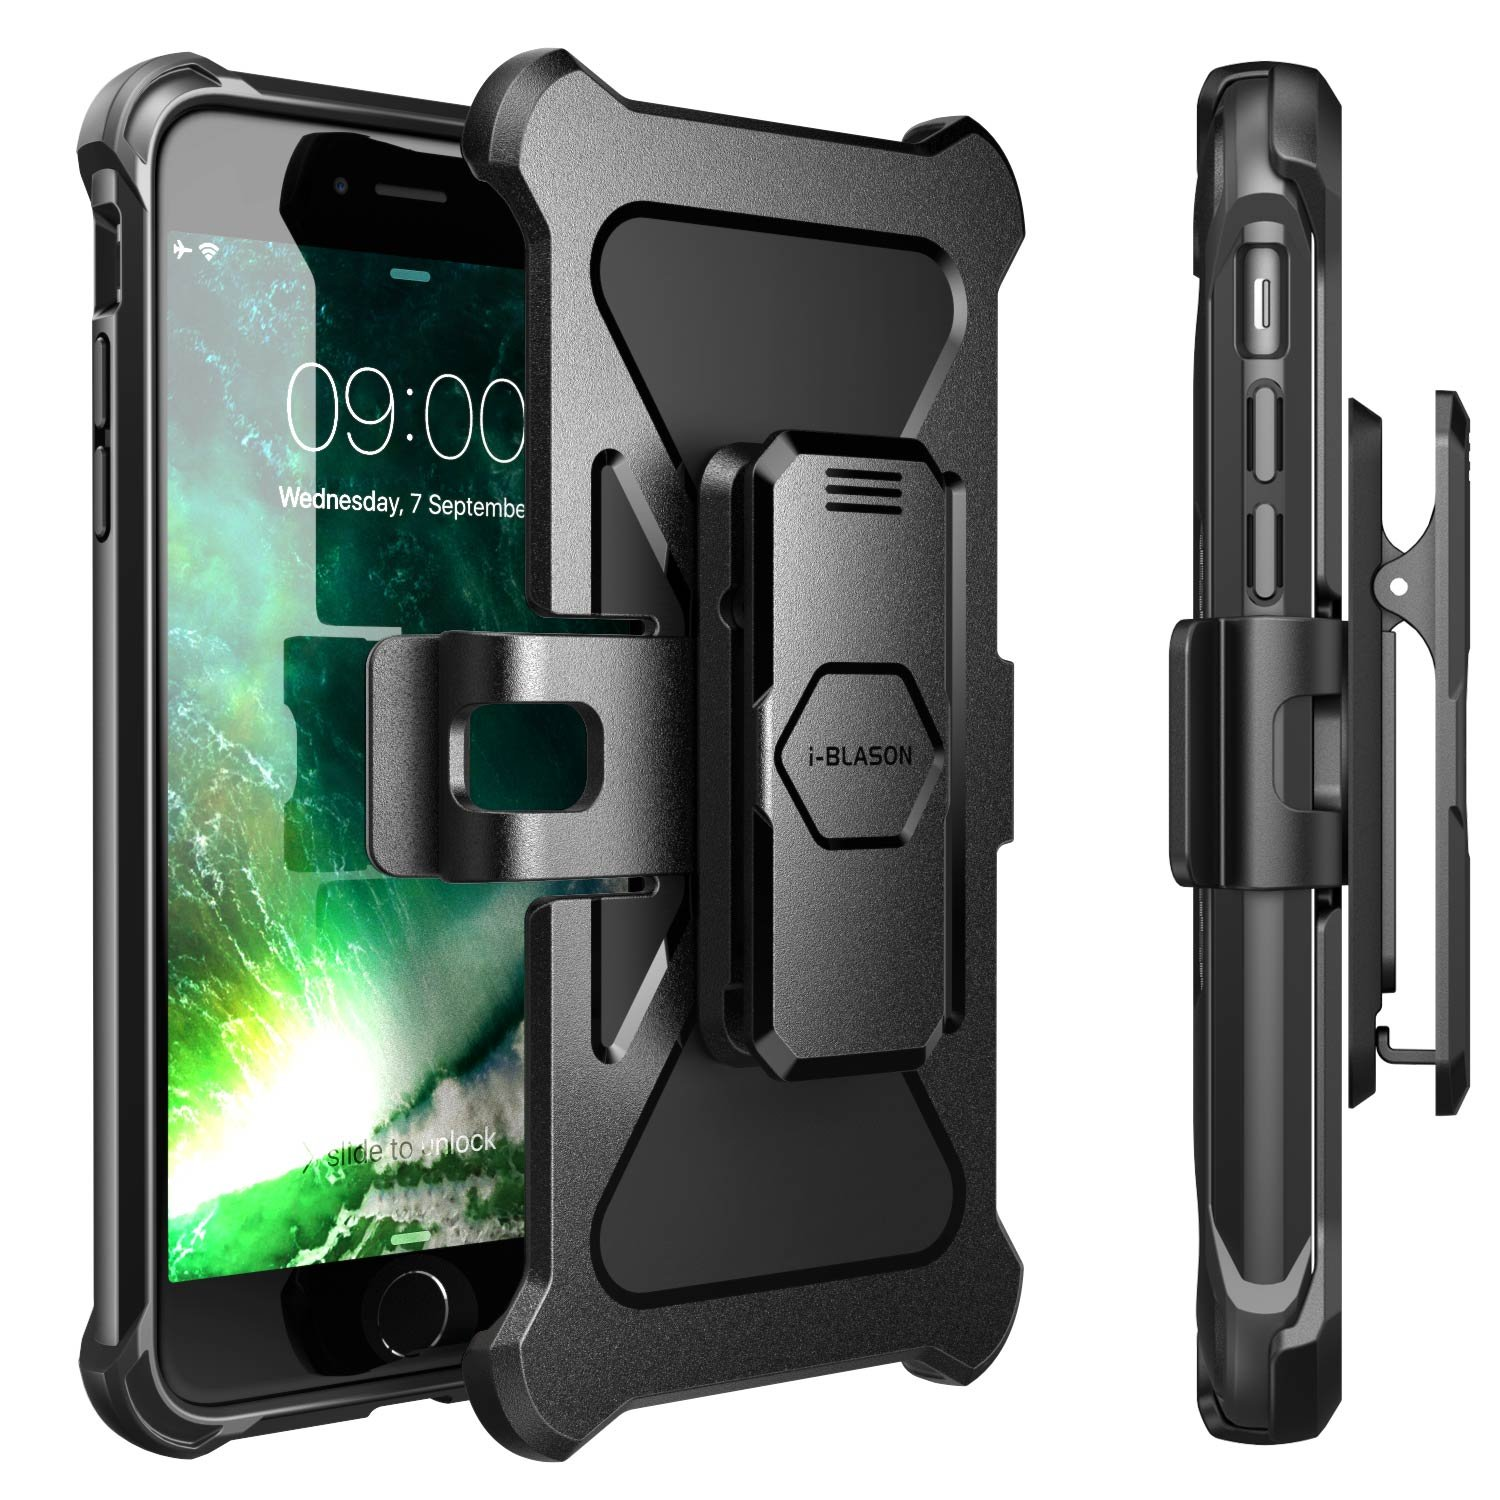 iPhone 8 Plus Case, i-Blason Transformer [Kickstand] Apple iPhone 8 Plus 2017 [Heavy Duty] [Dual Layer] Combo Holster Cover case with [Locking Belt Swivel Clip] (Compatible with iPhone 7 Plus)(Black) by i-Blason (Image #7)